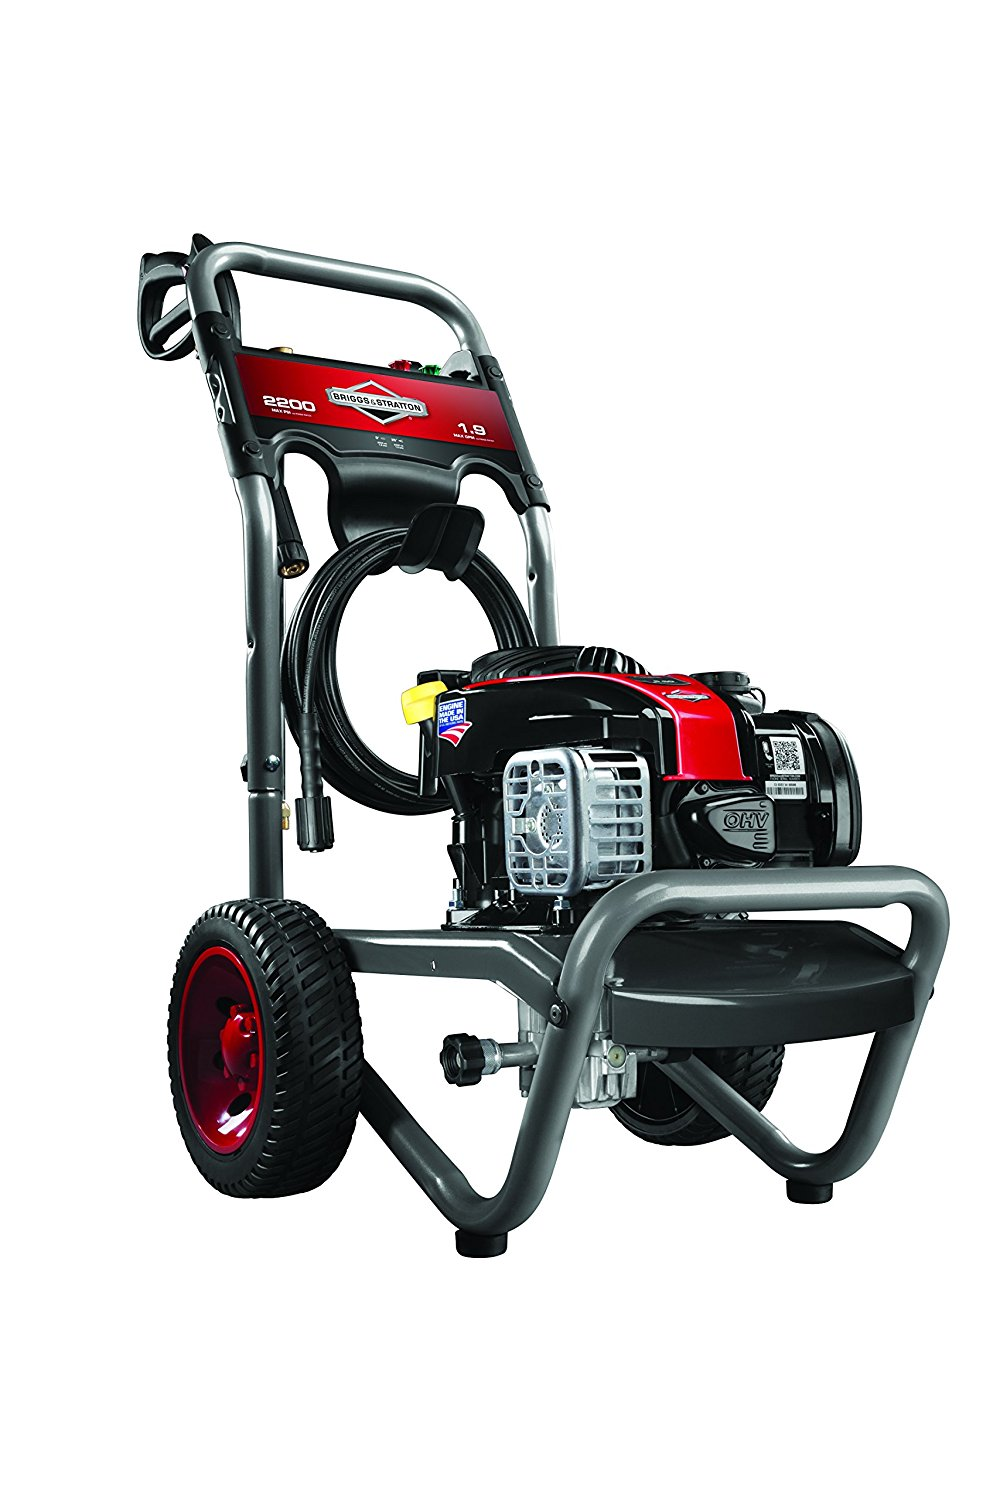 briggsstratton_power_washer